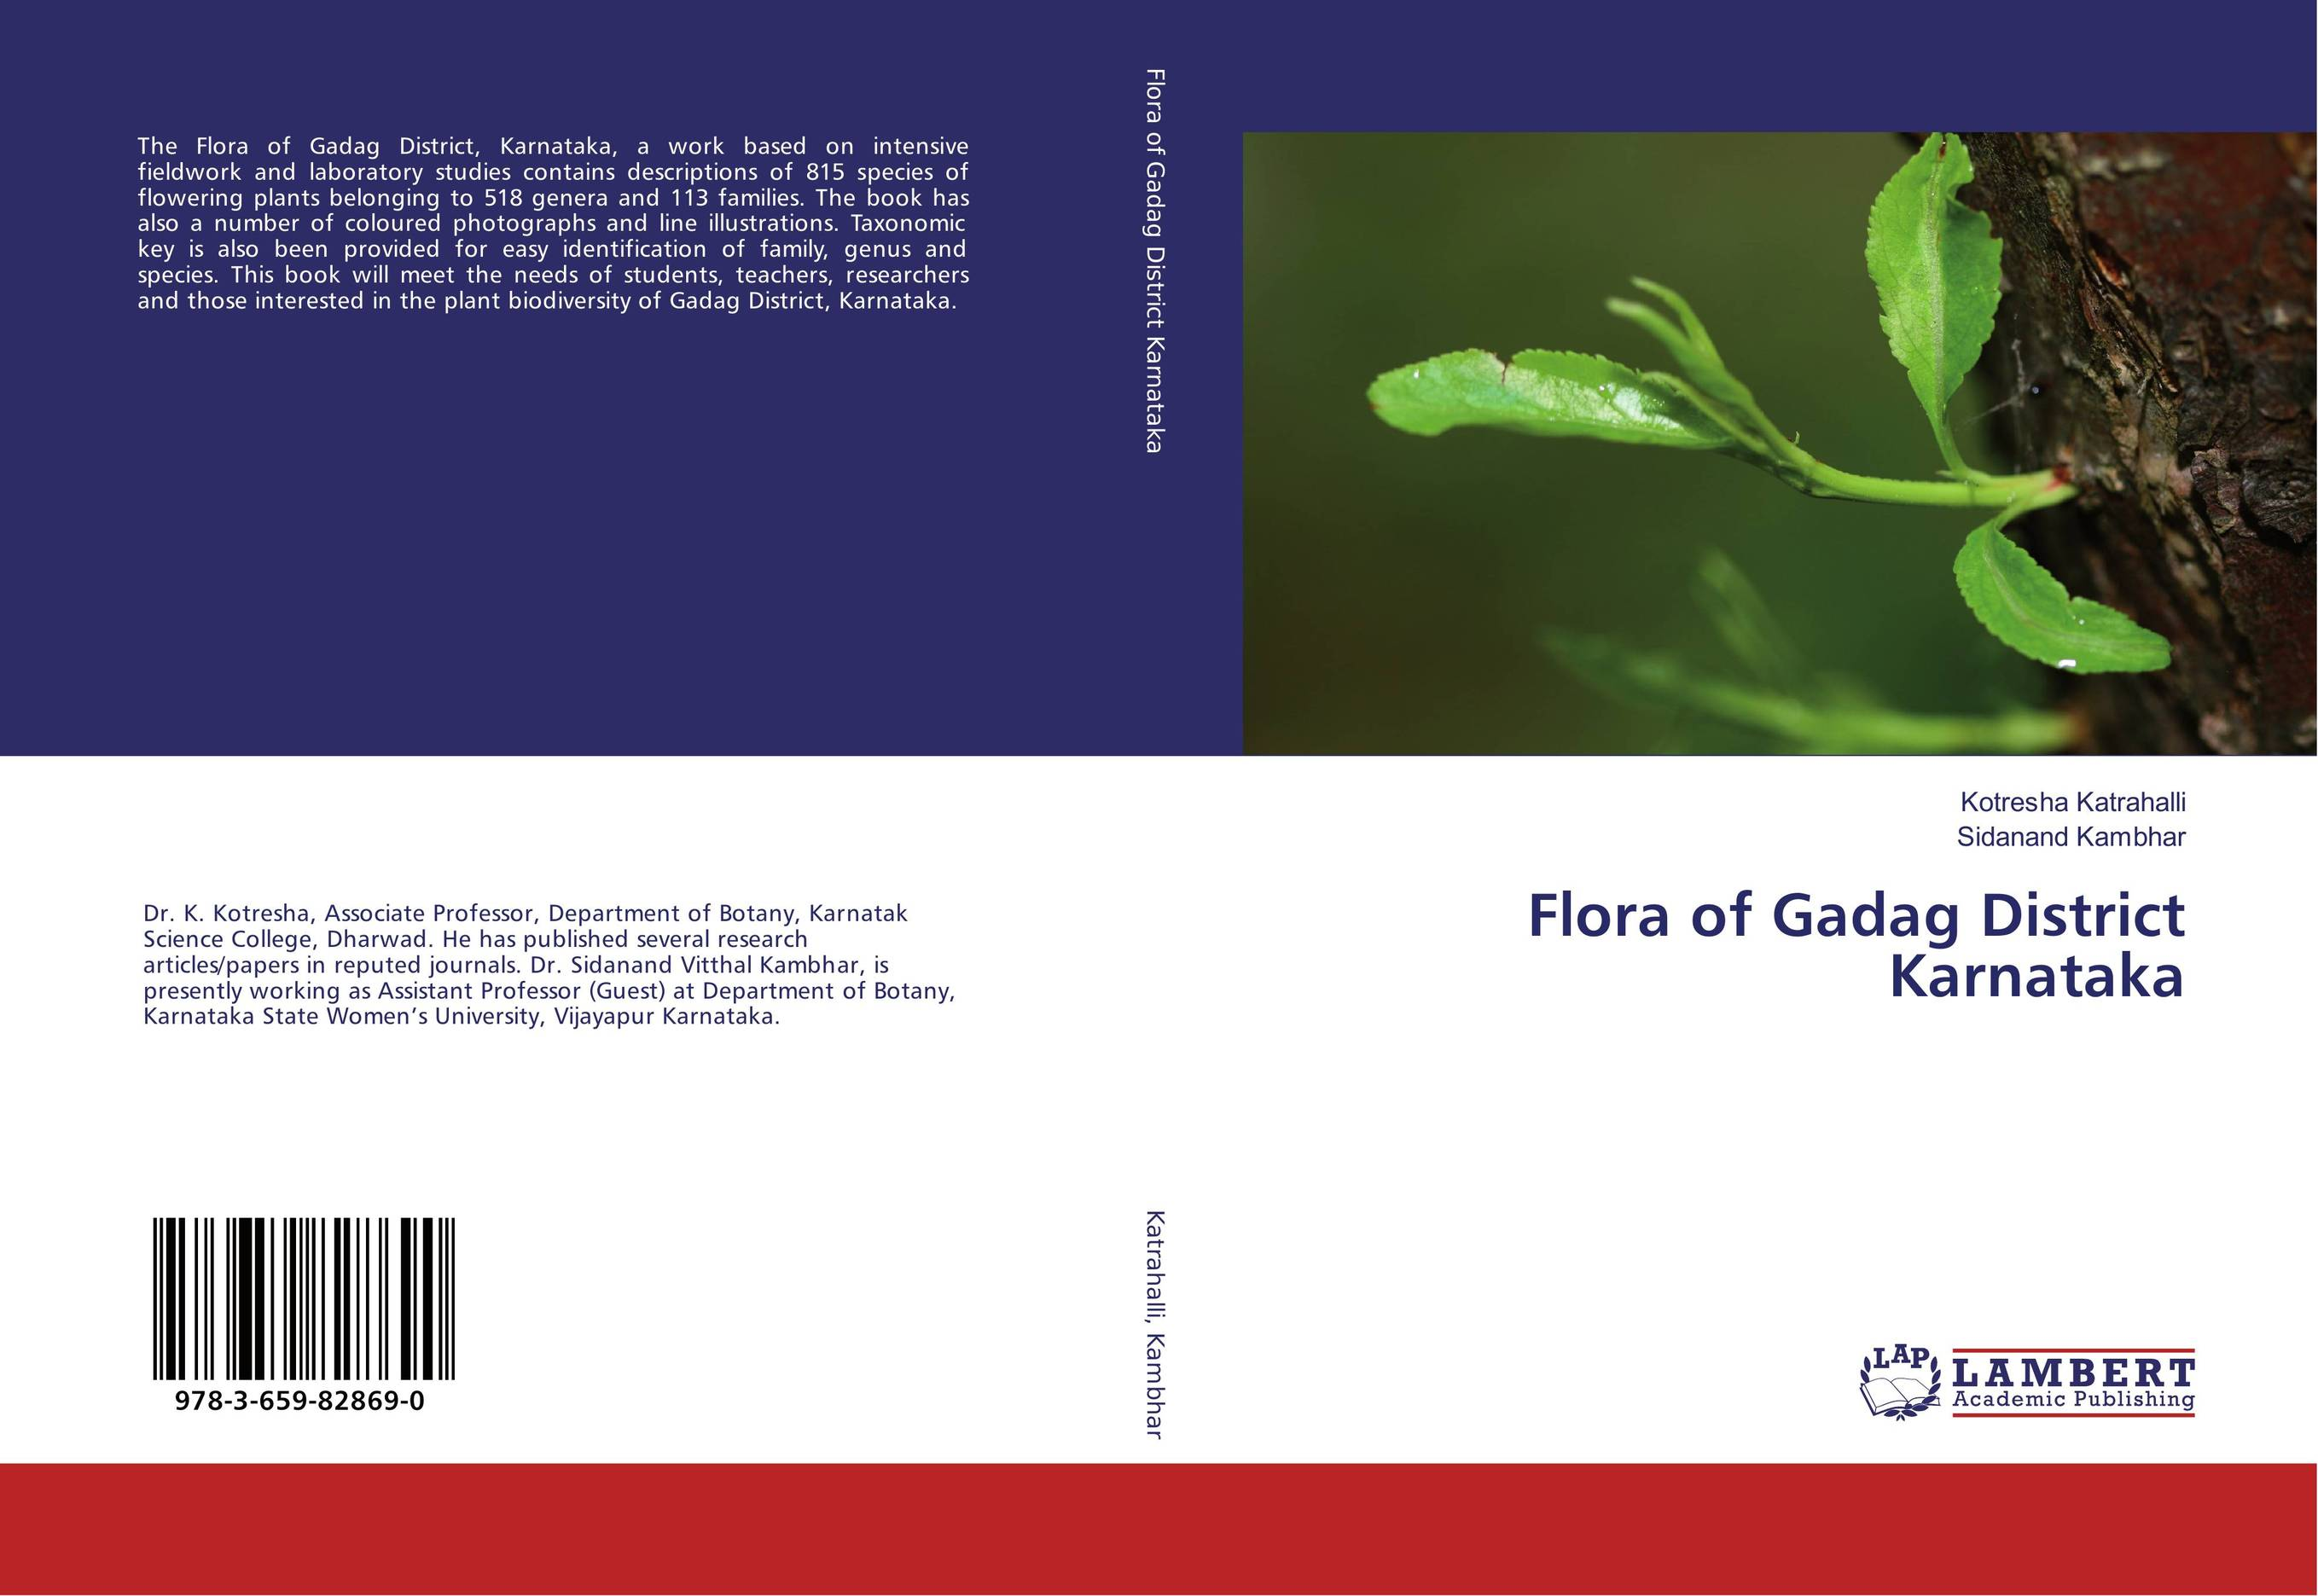 Flora of Gadag District Karnataka anatomical studies on species of subfamily stachyoideae lamiaceae